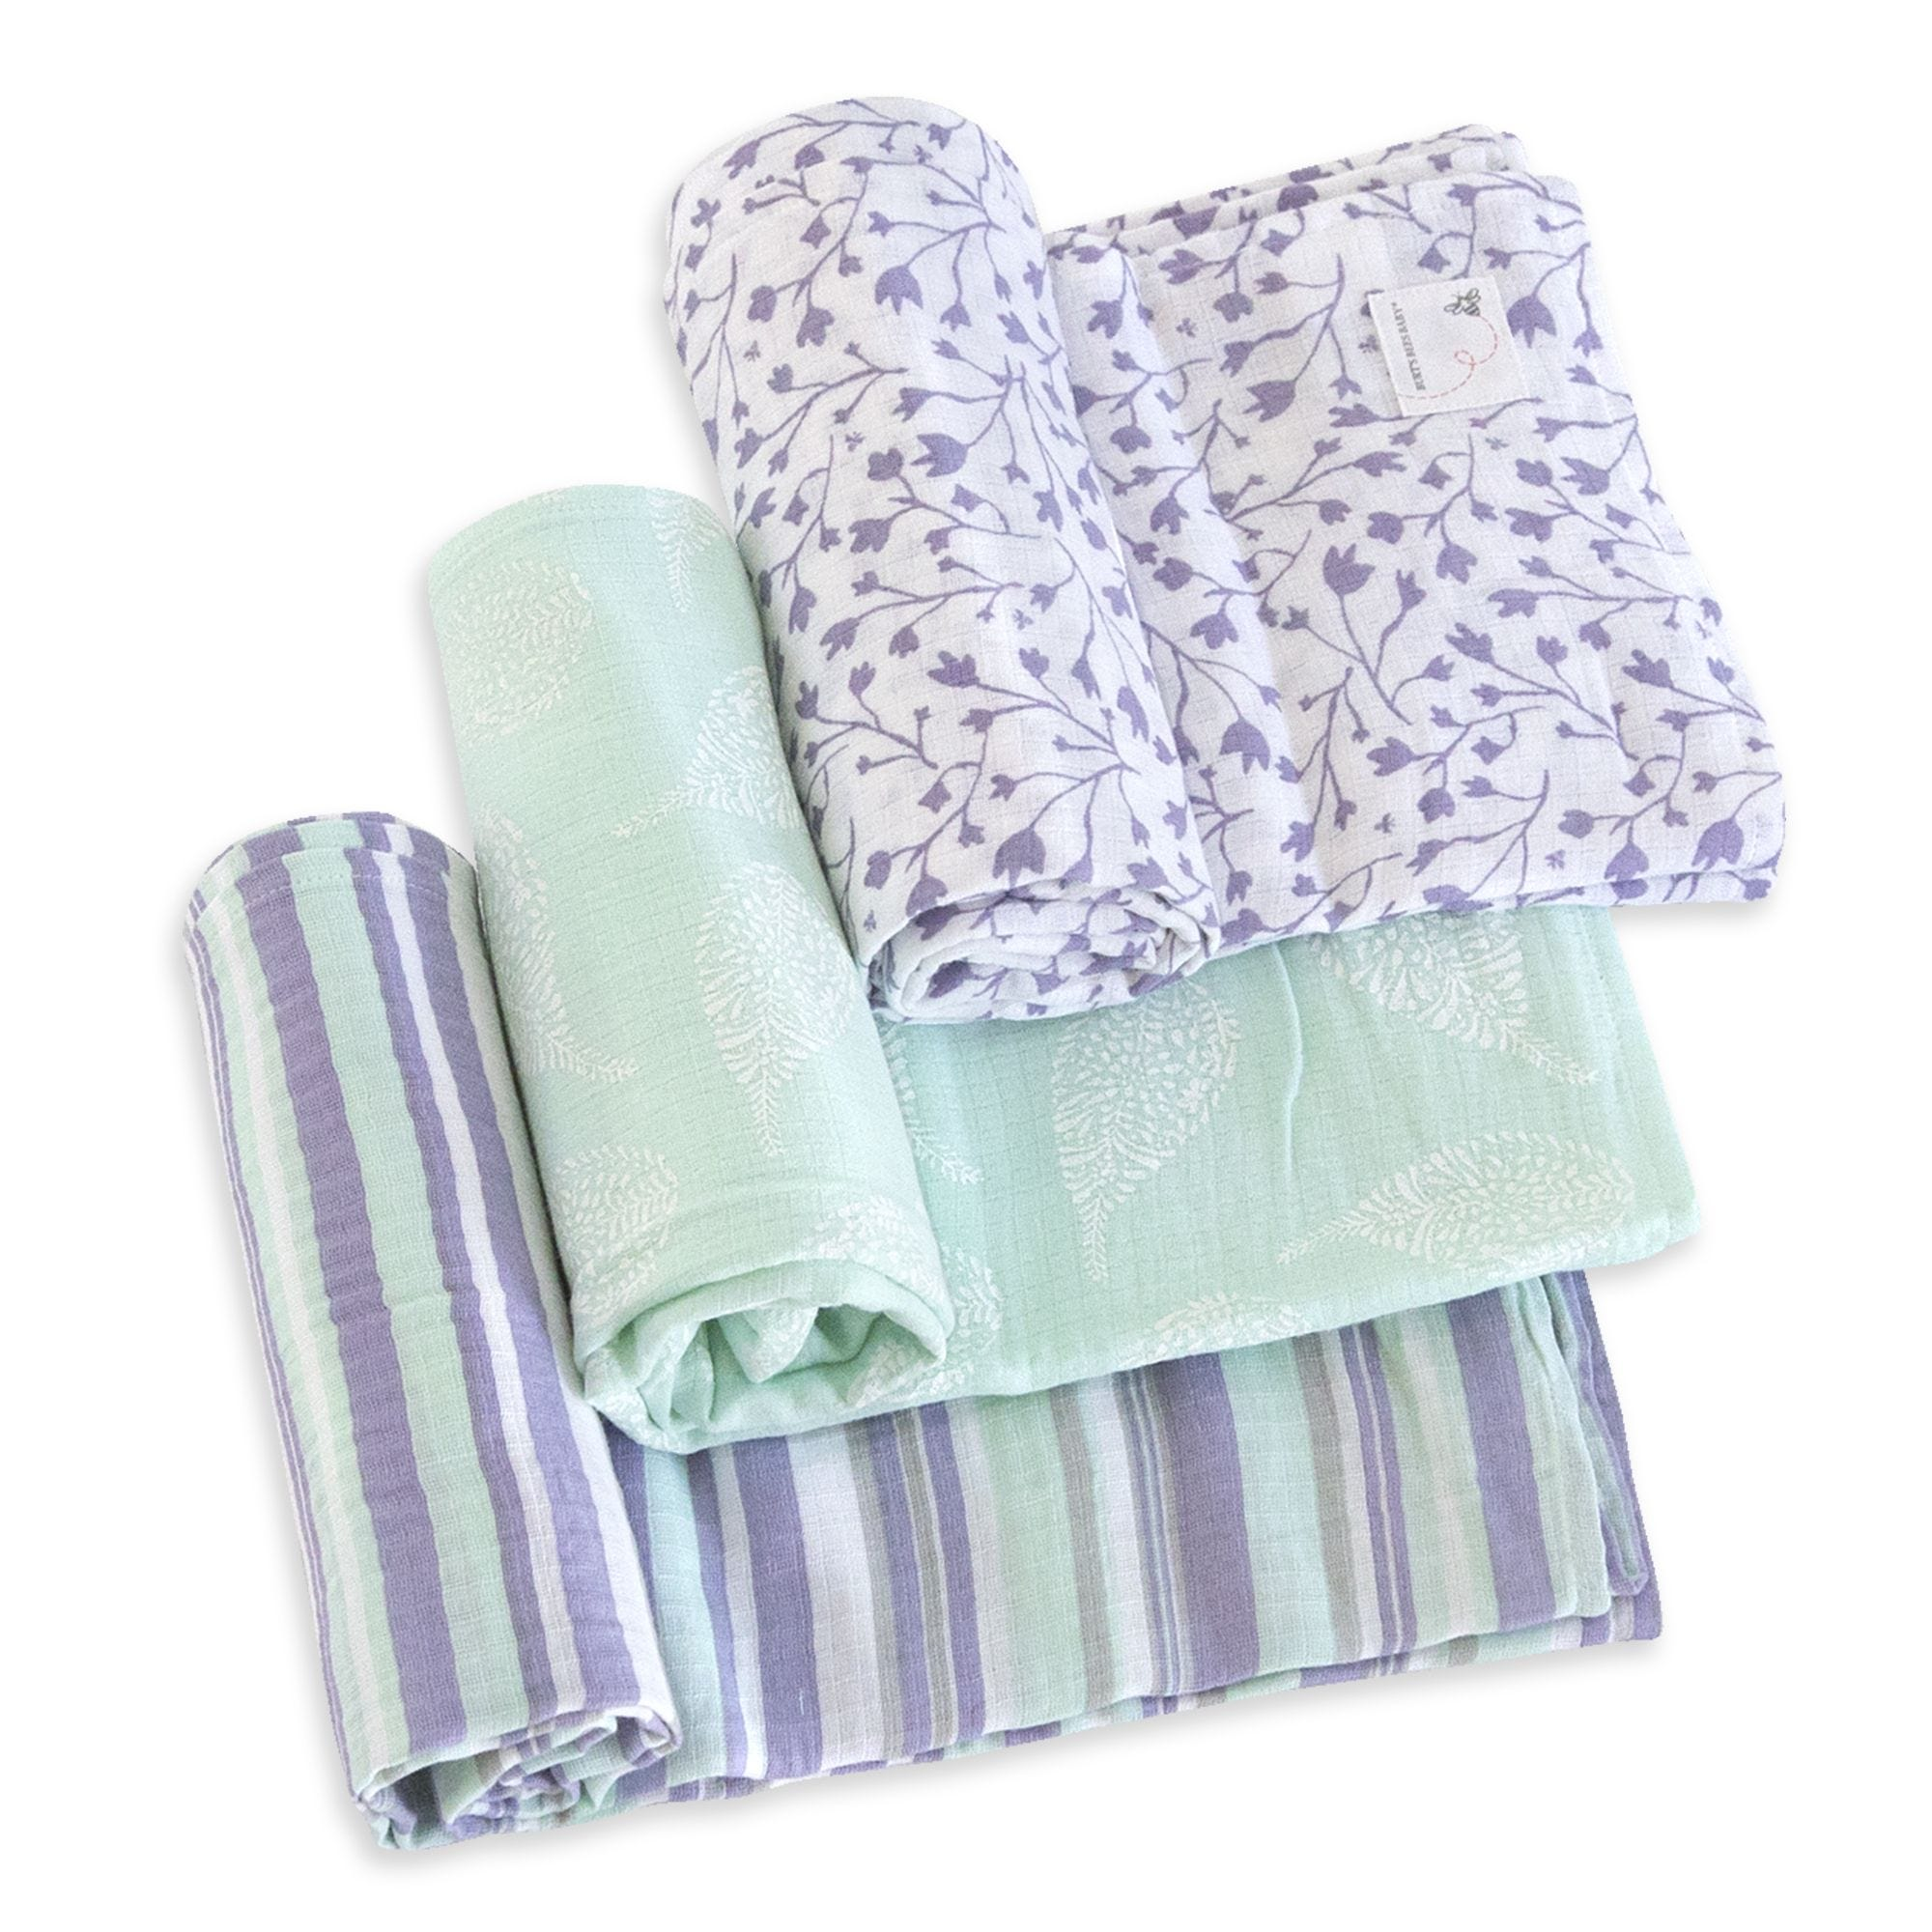 16628c3eff2be Floral Forest Organic Cotton Woven Muslin Baby Swaddle Blankets 3 Pack